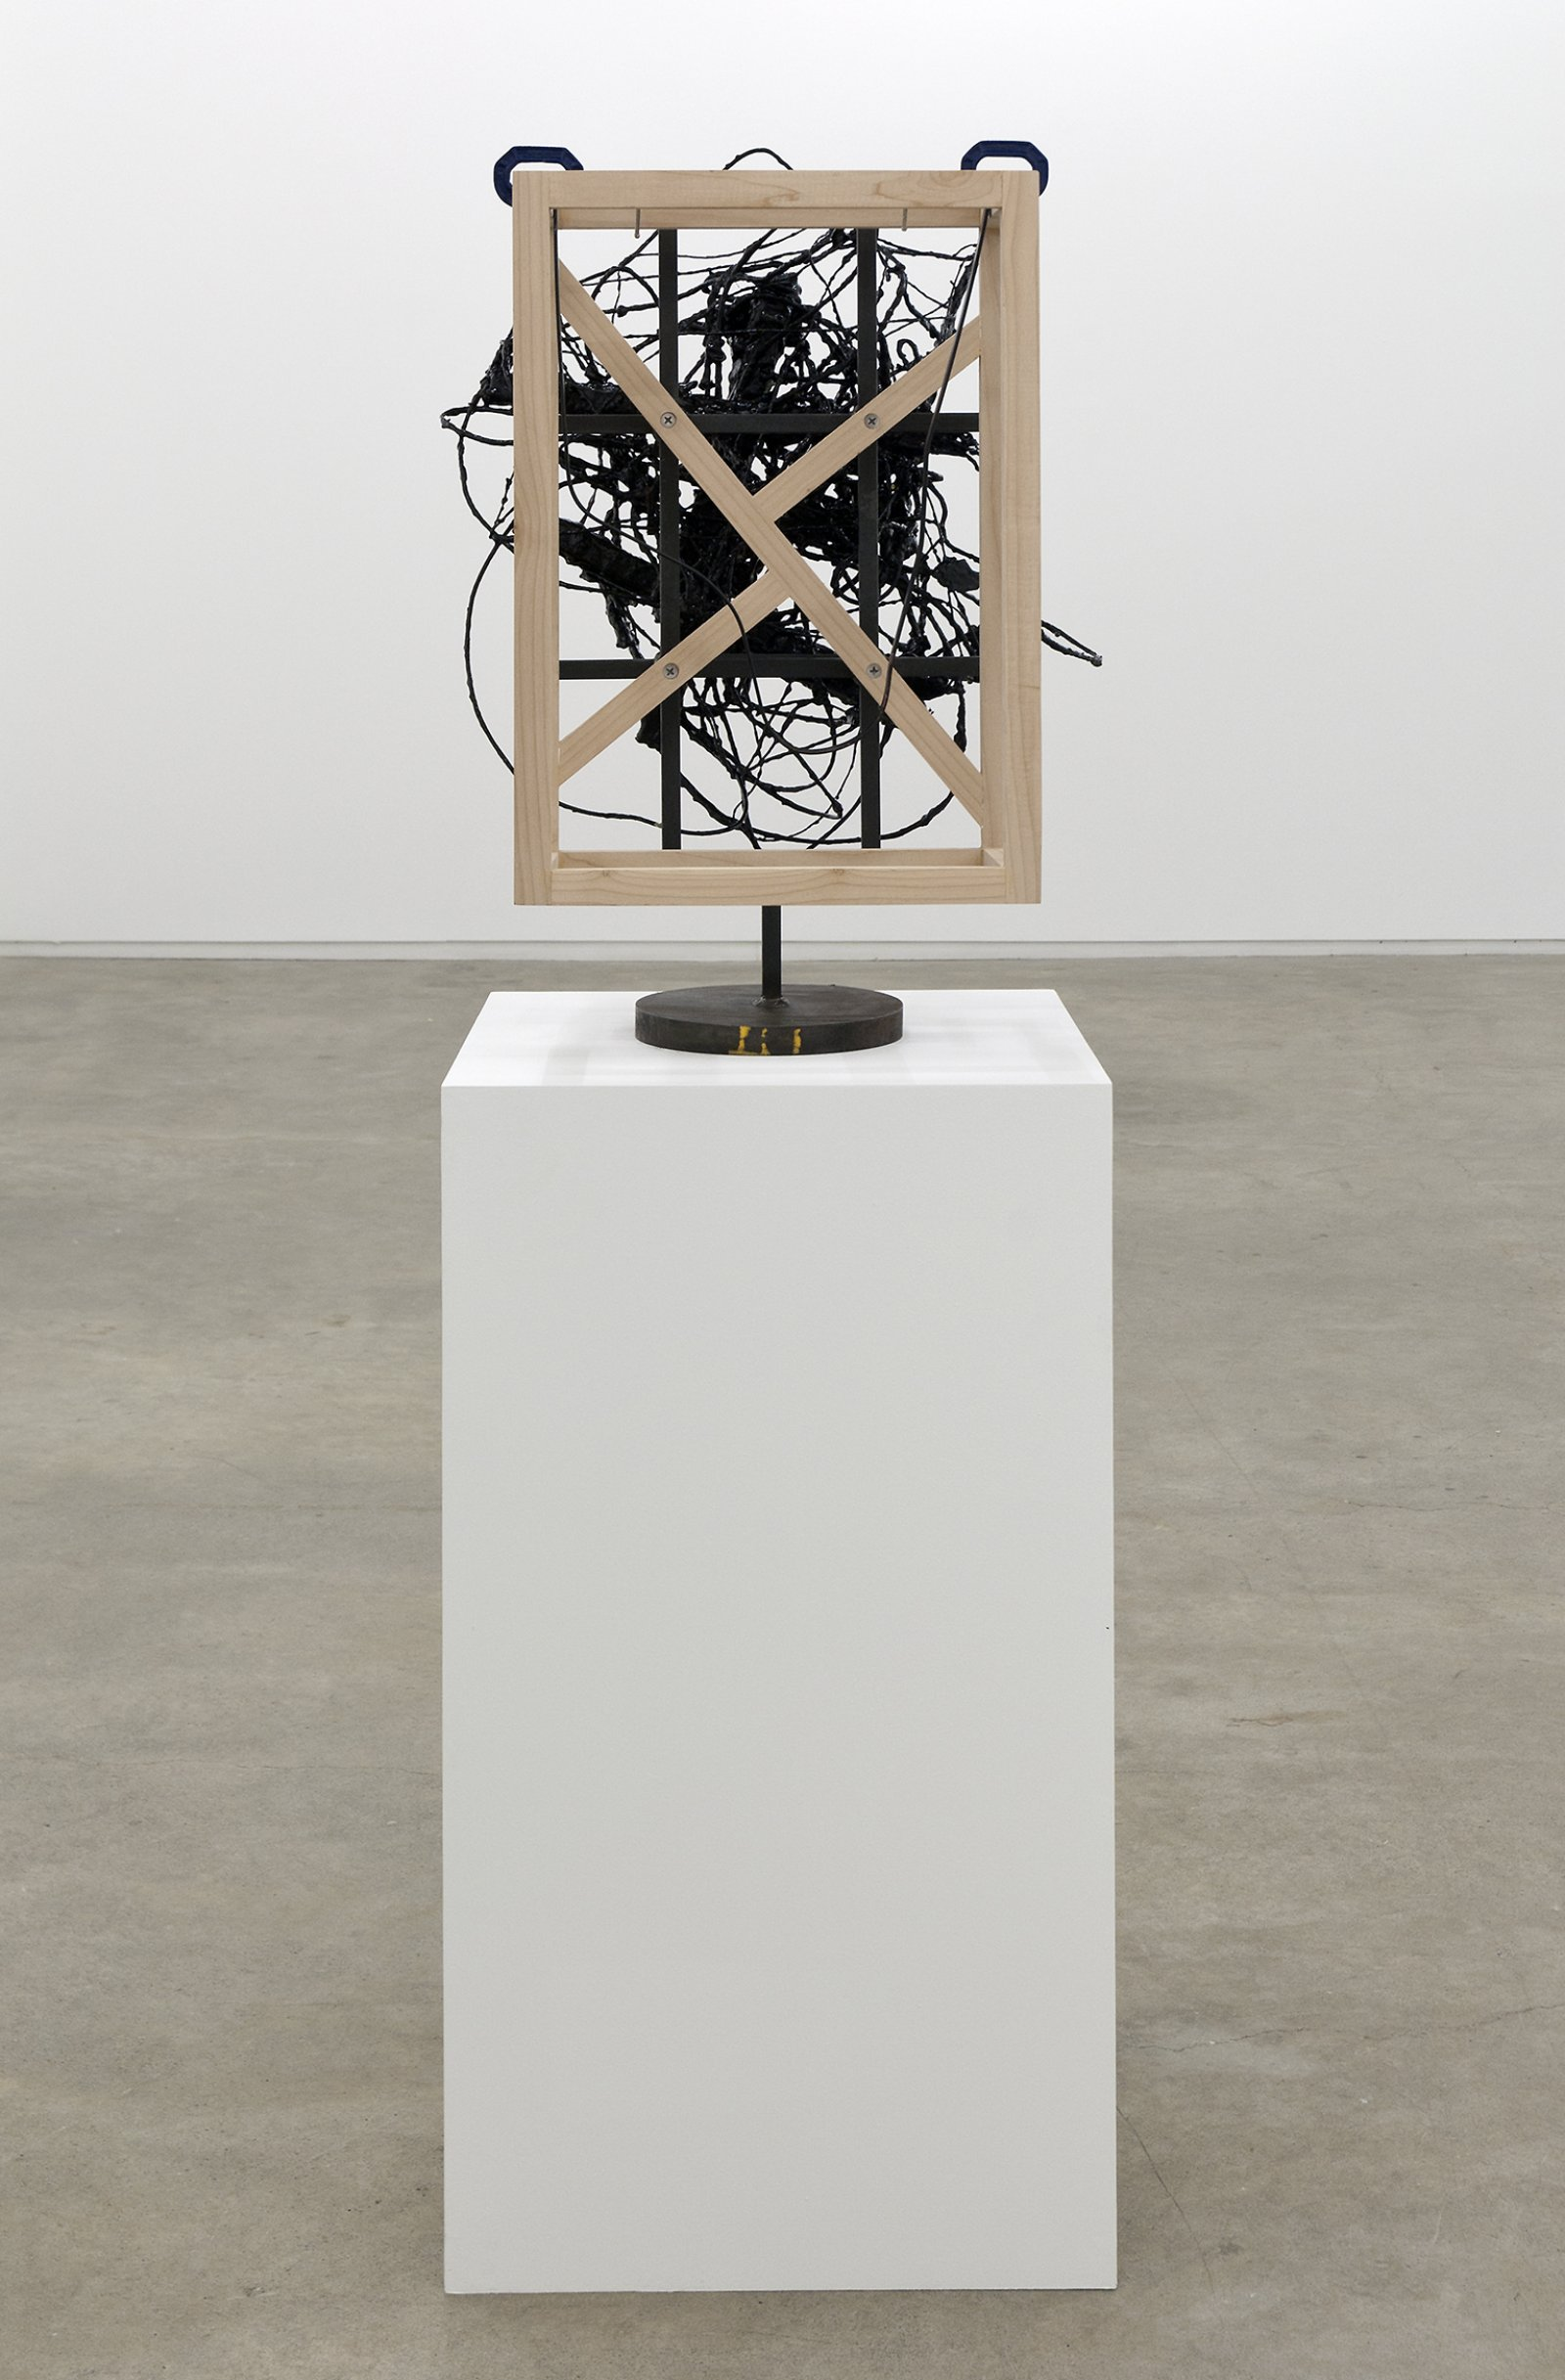 Damian Moppett, Untitled, 2010, steel, wood, wire, plaster, enamel, clamps, 27 x 18 x 18 in. (69 x 46 x 44 cm) by Damian Moppett